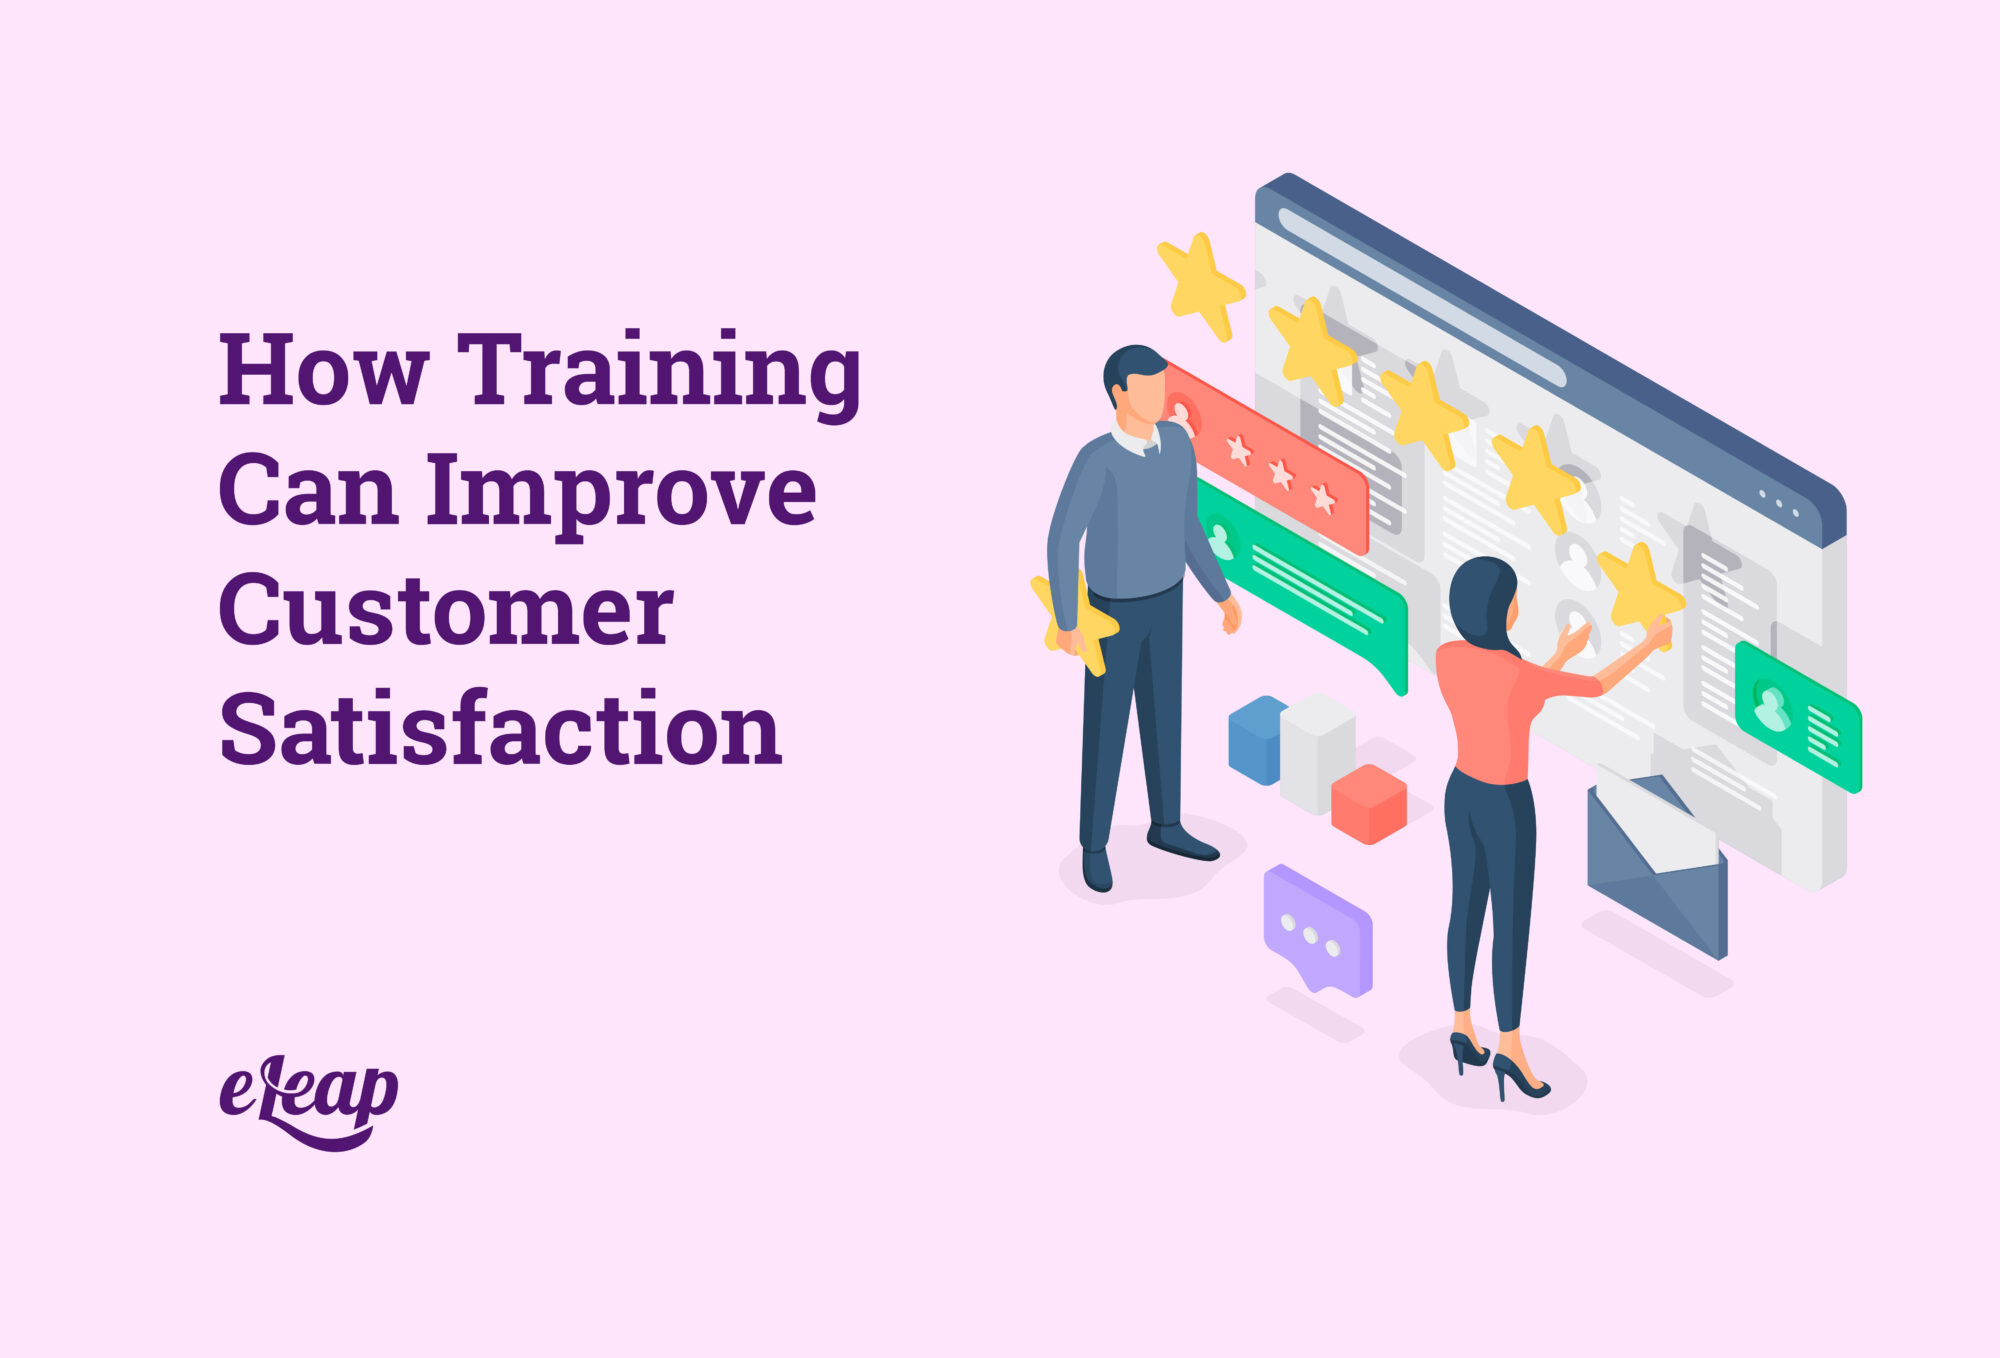 How Training Can Improve Customer Satisfaction